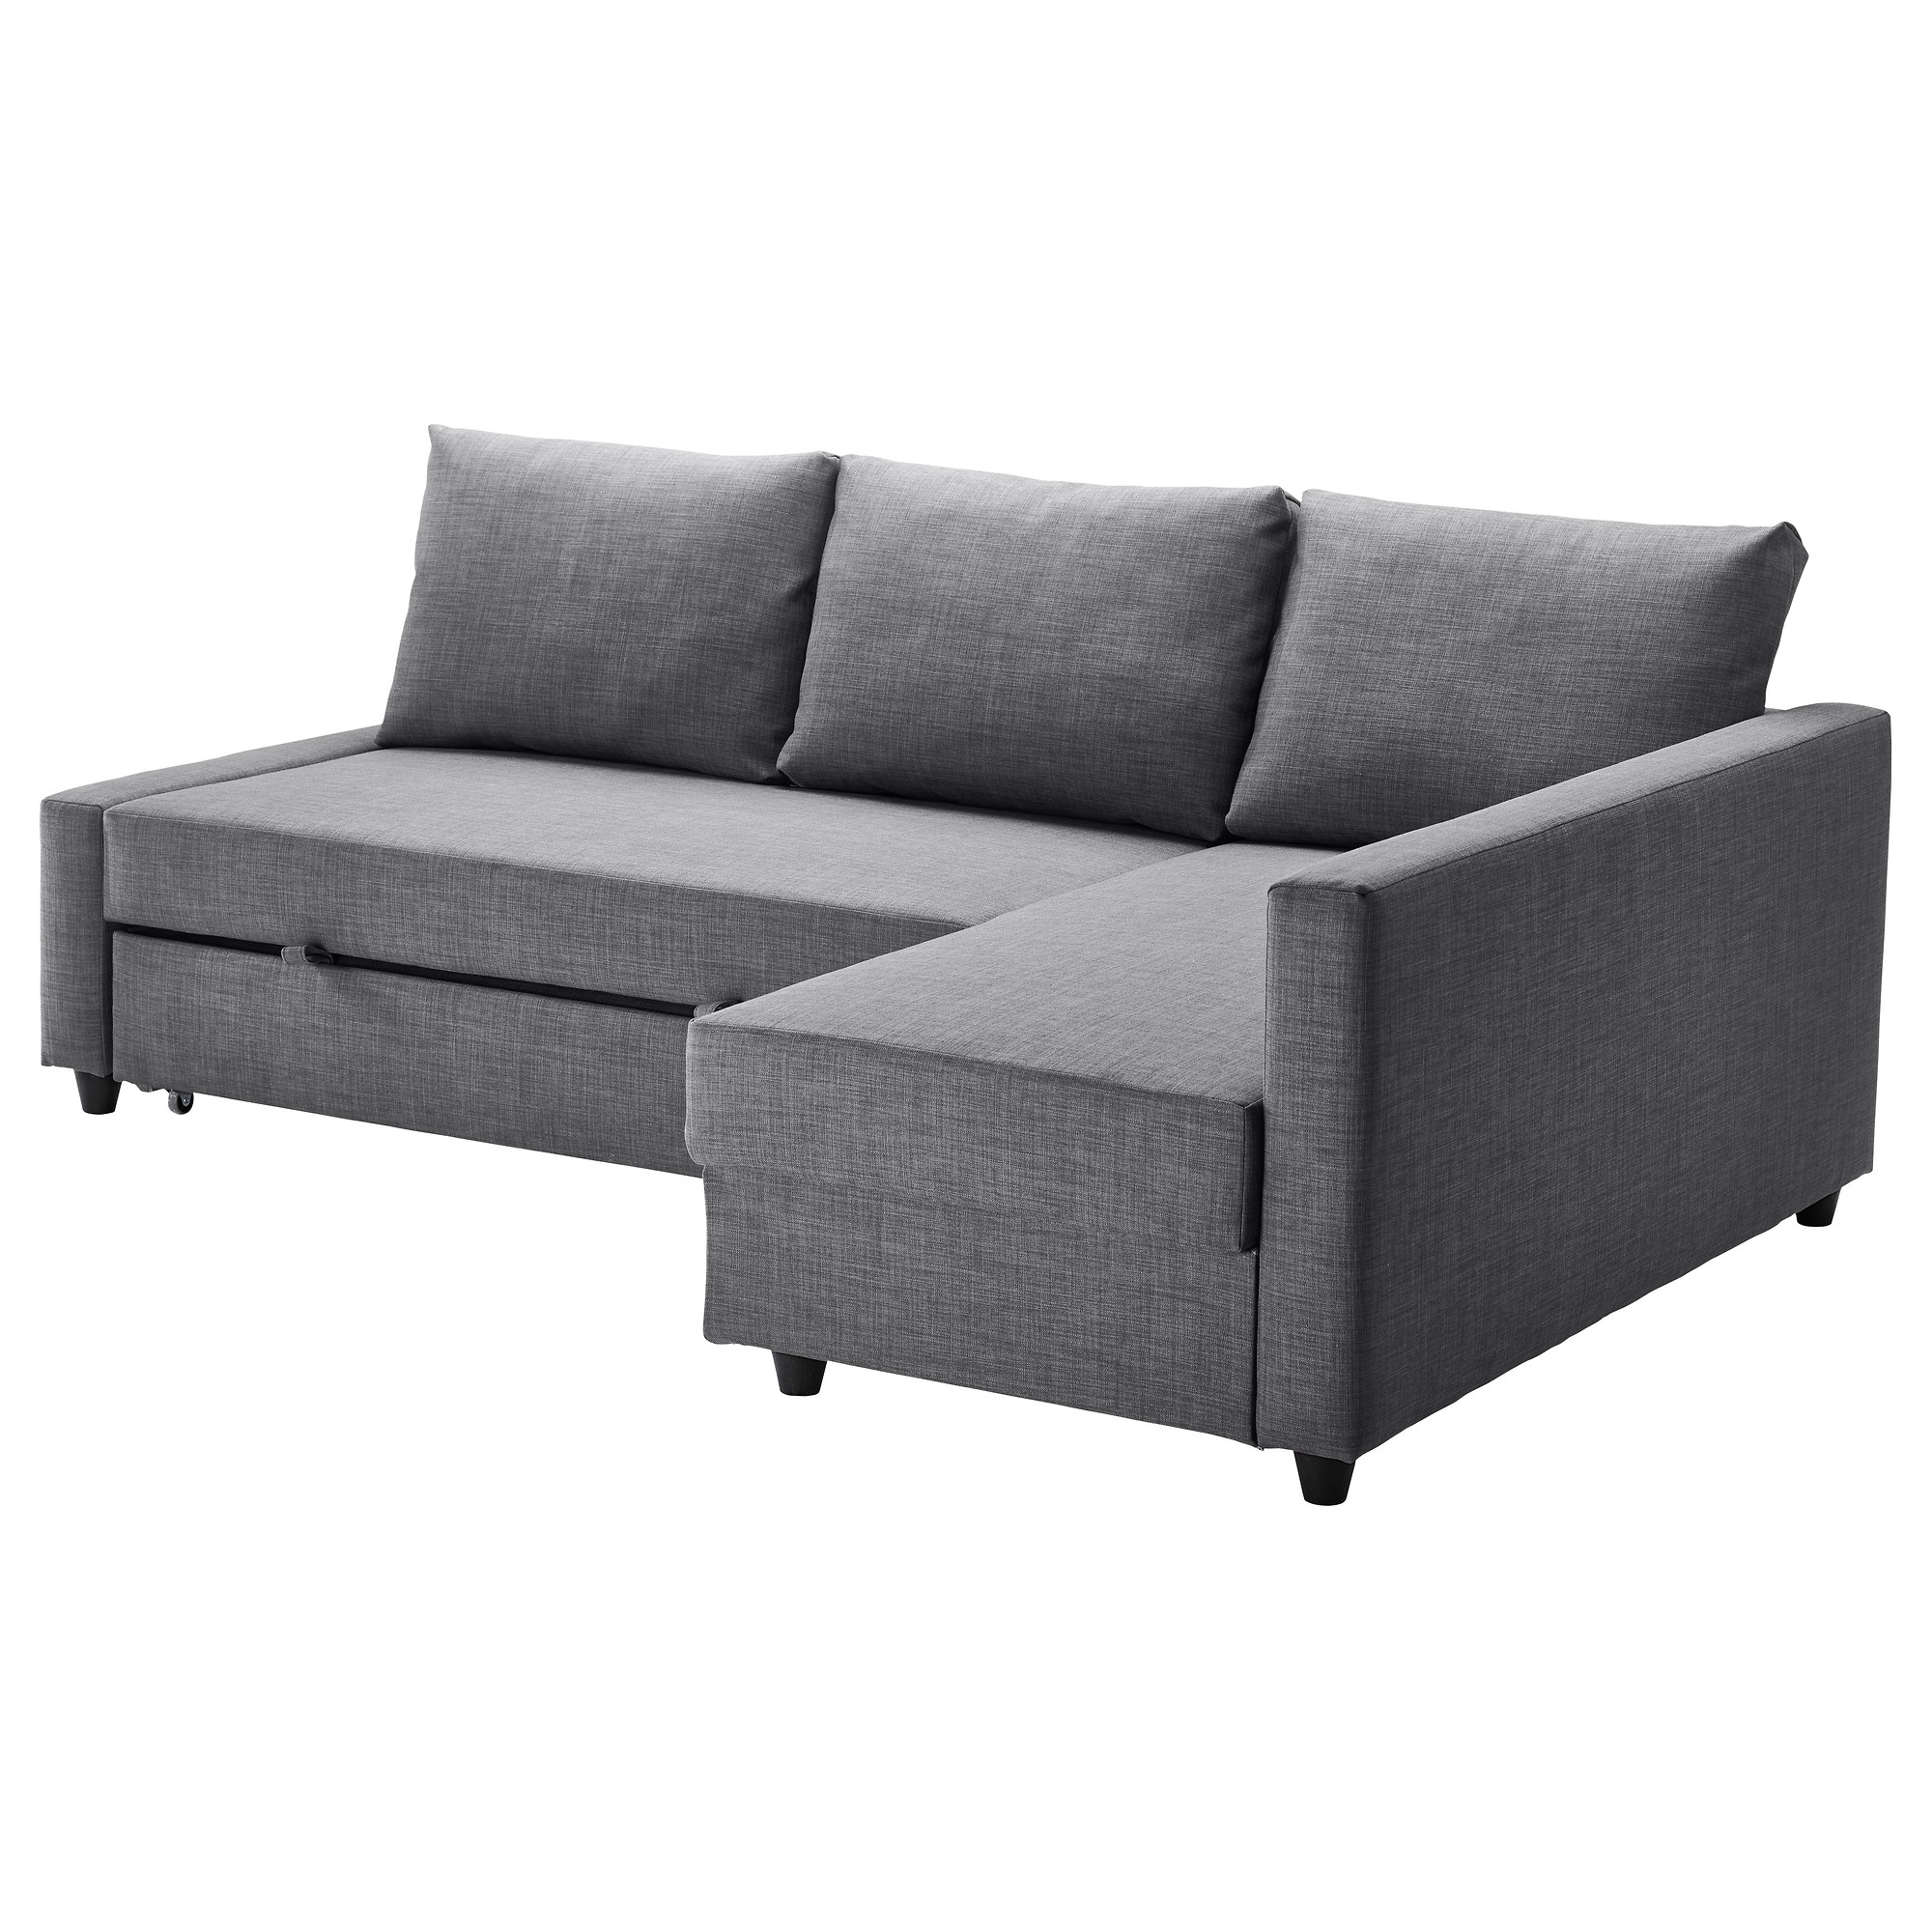 Friheten Corner Sofa Bed With Storage Skiftebo Dark Grey Ikea For Corner Sofa Bed With Storage Ikea (#5 of 12)